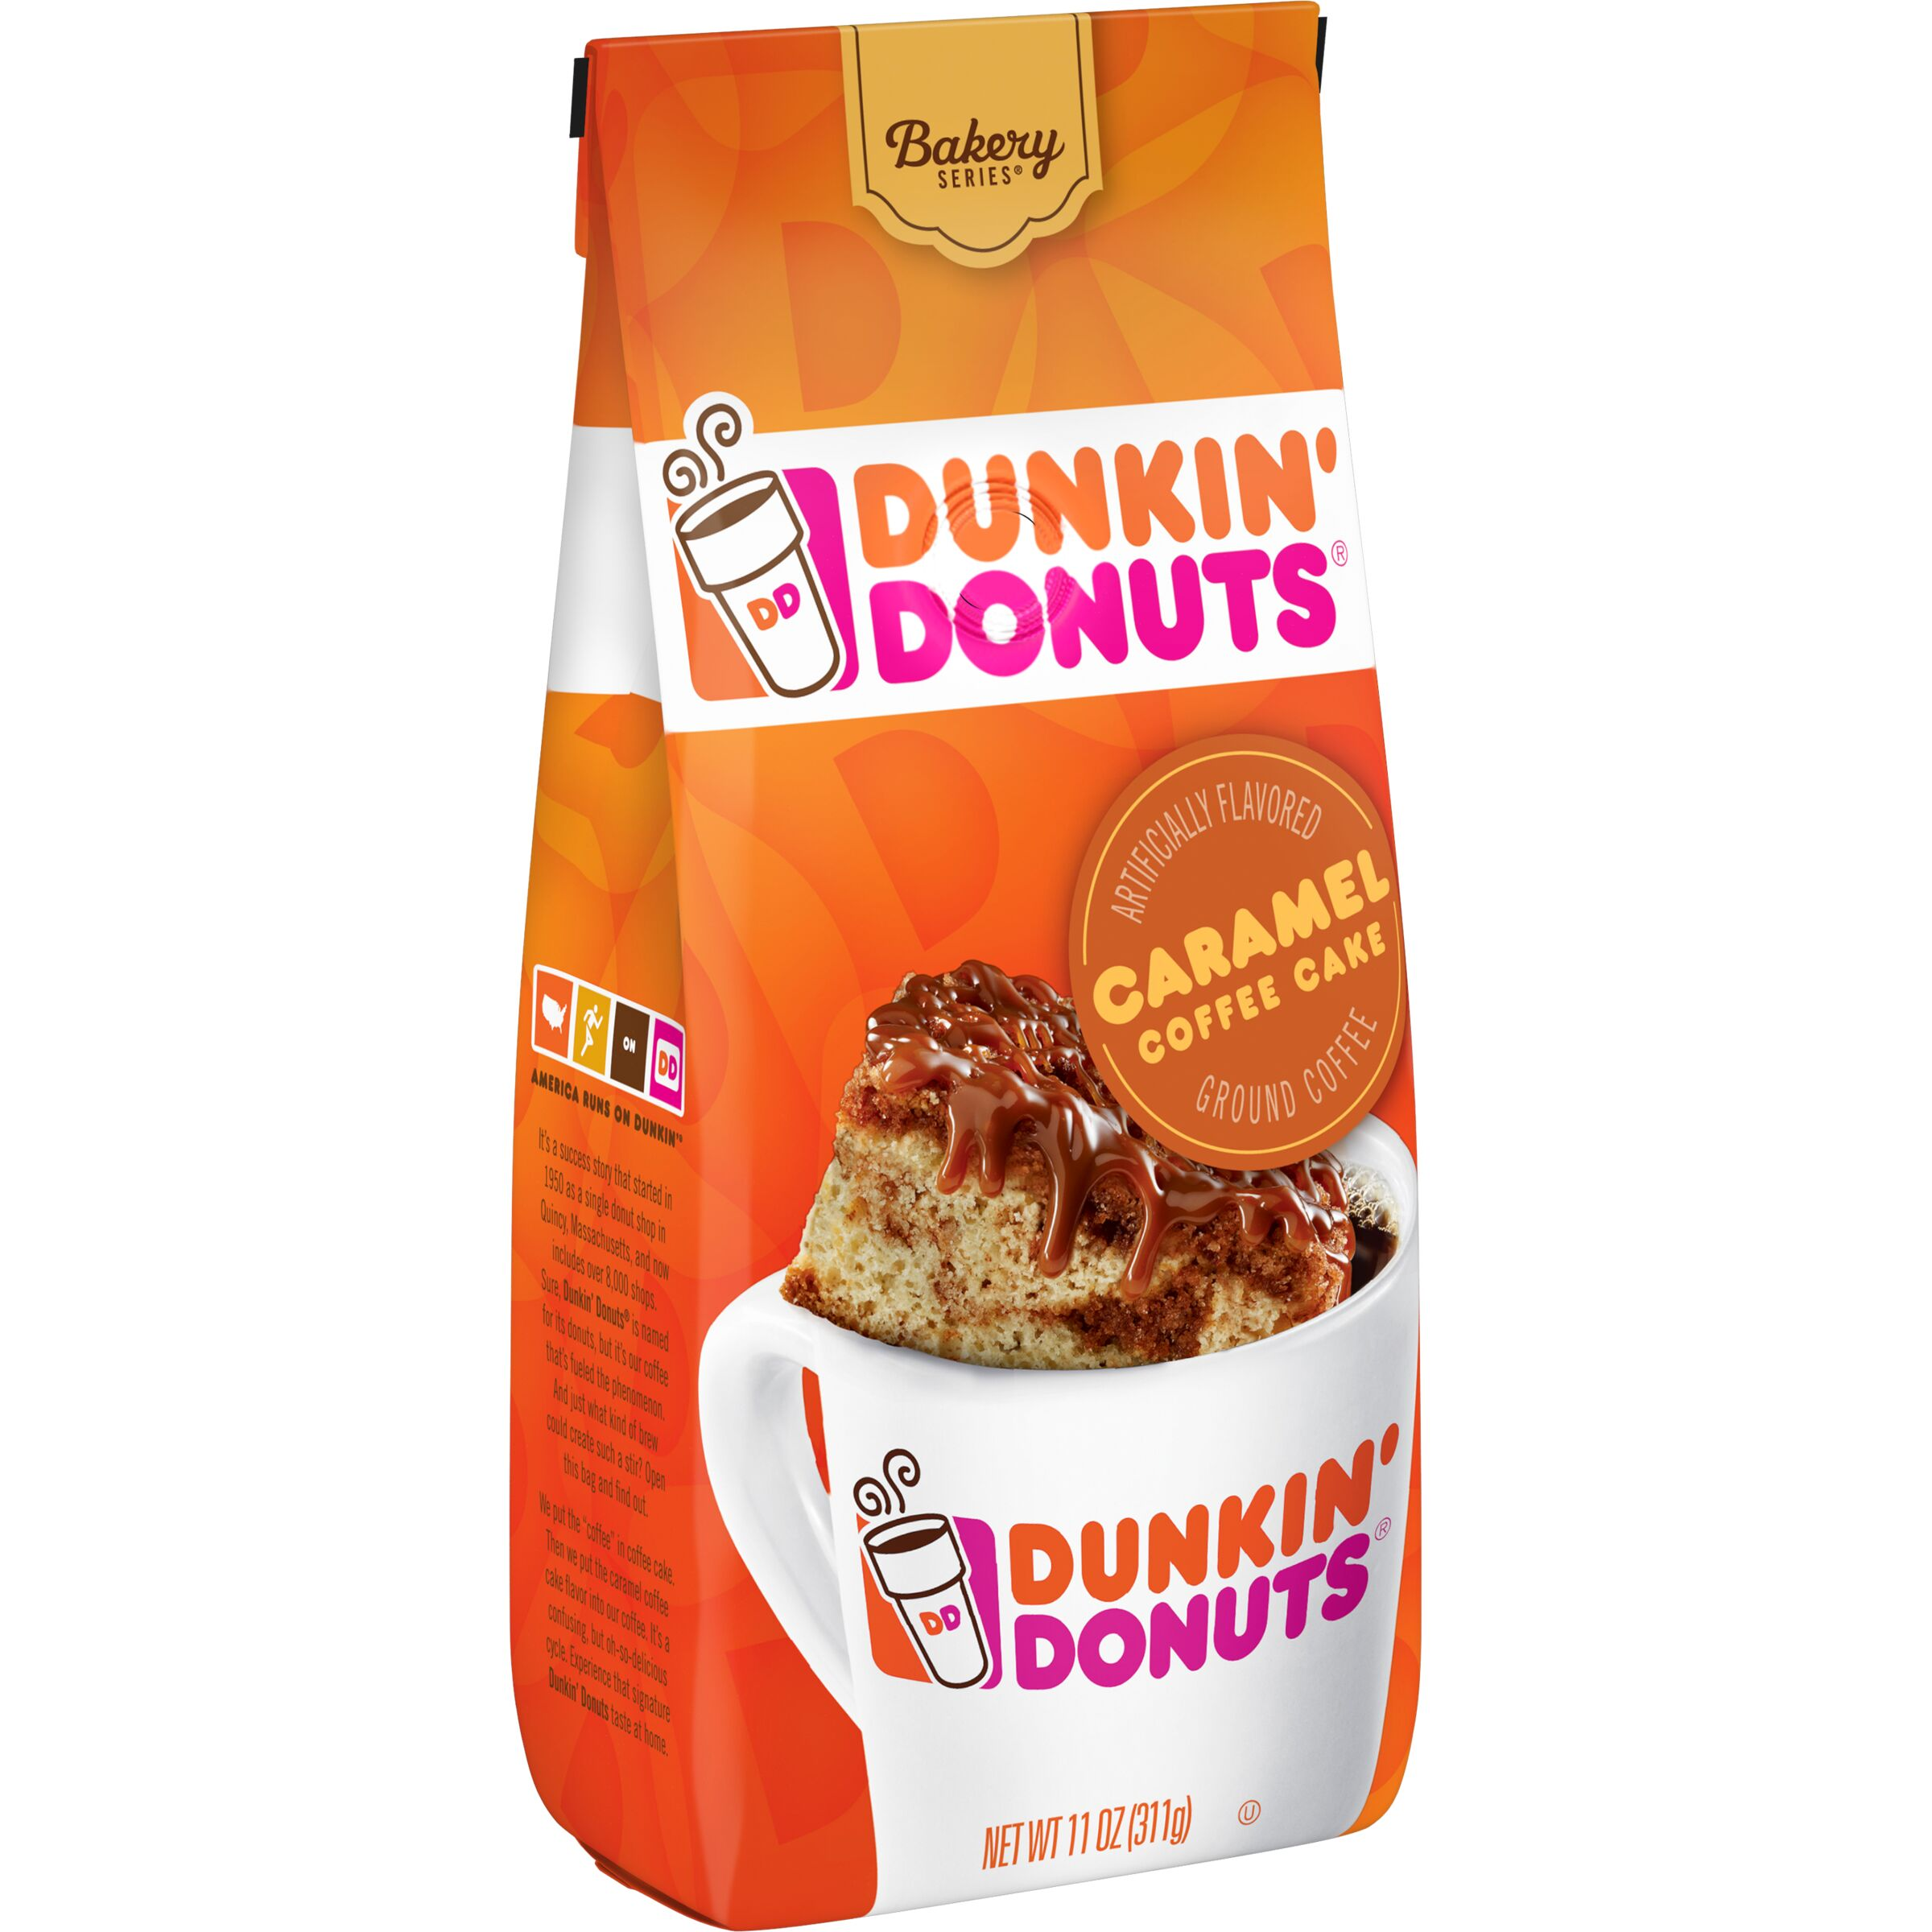 Dunkin' Donuts Bakery Series Caramel Coffee Cake Flavored Coffee